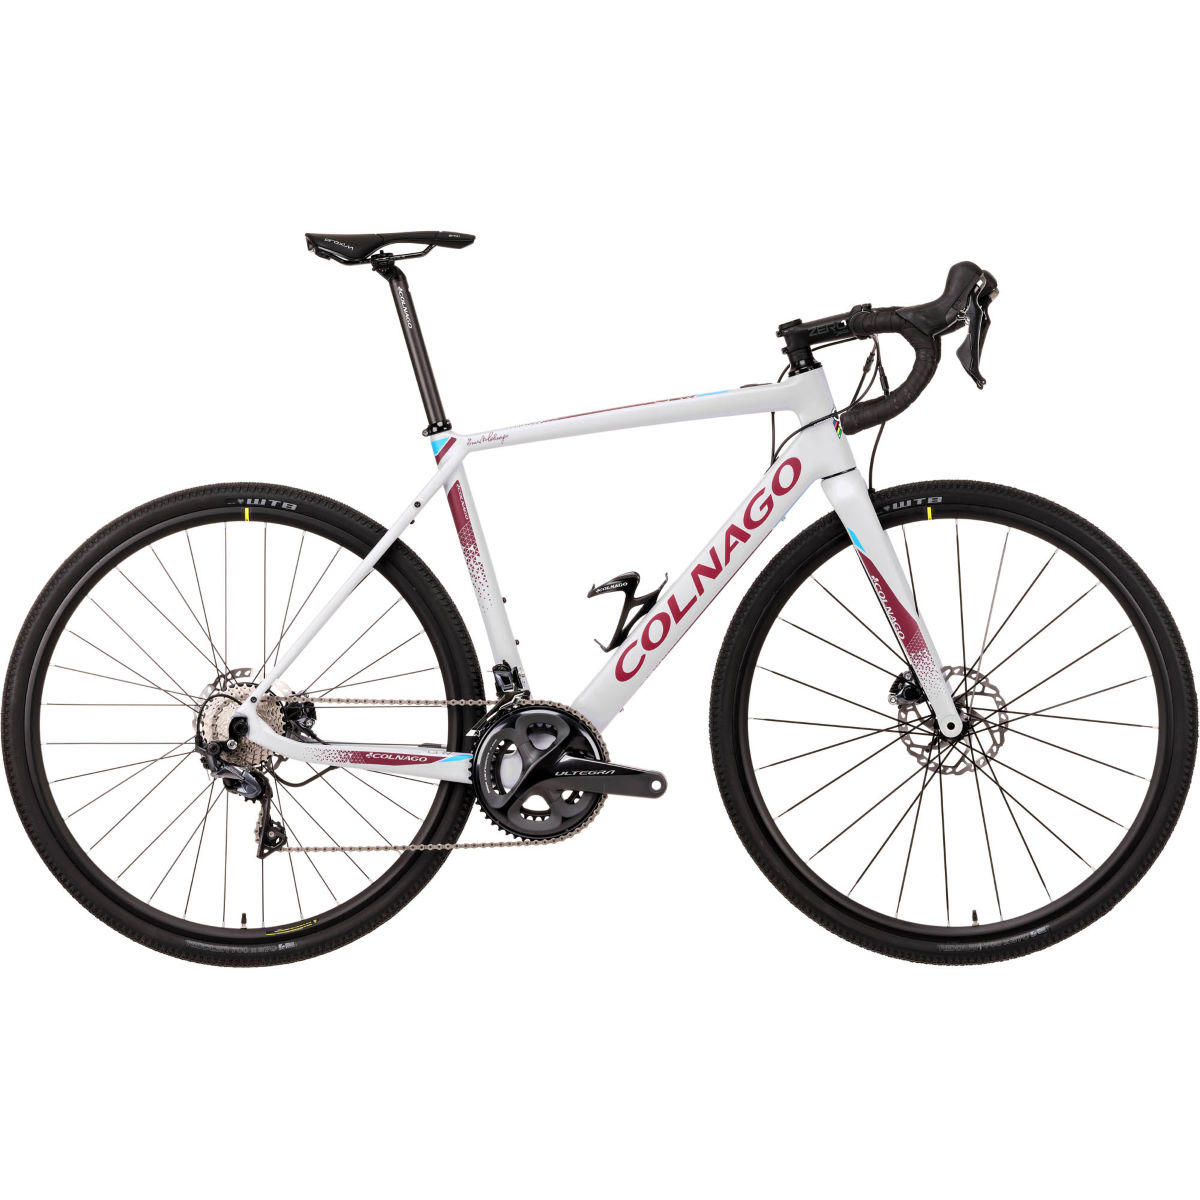 Colnago Colnago EGRV Disc Gravel E-Bike (2021)   Electric Road Bikes